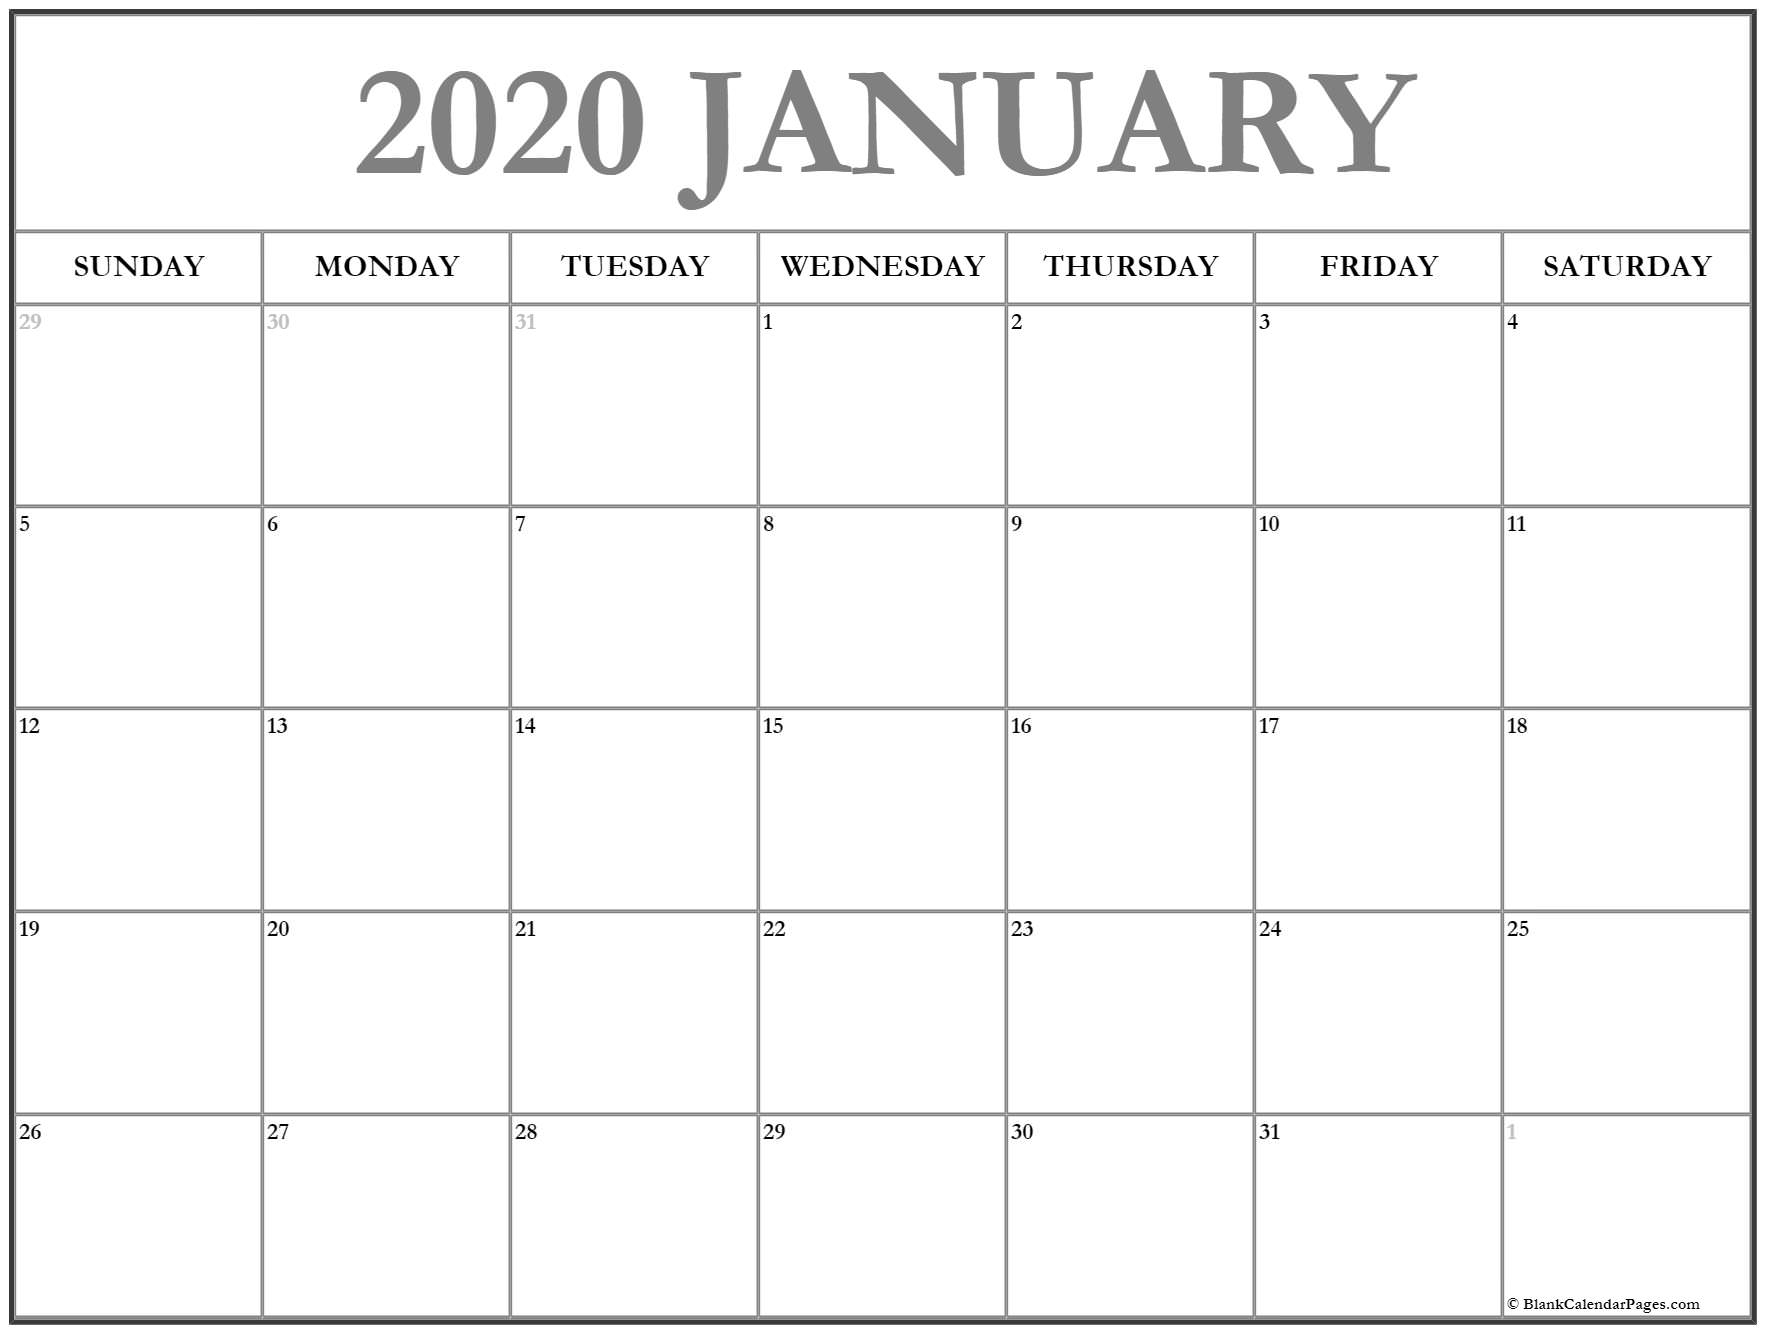 January 2020 Calendar | Free Printable Monthly Calendars throughout 2020 Printable Calendar Free That Start With Monday